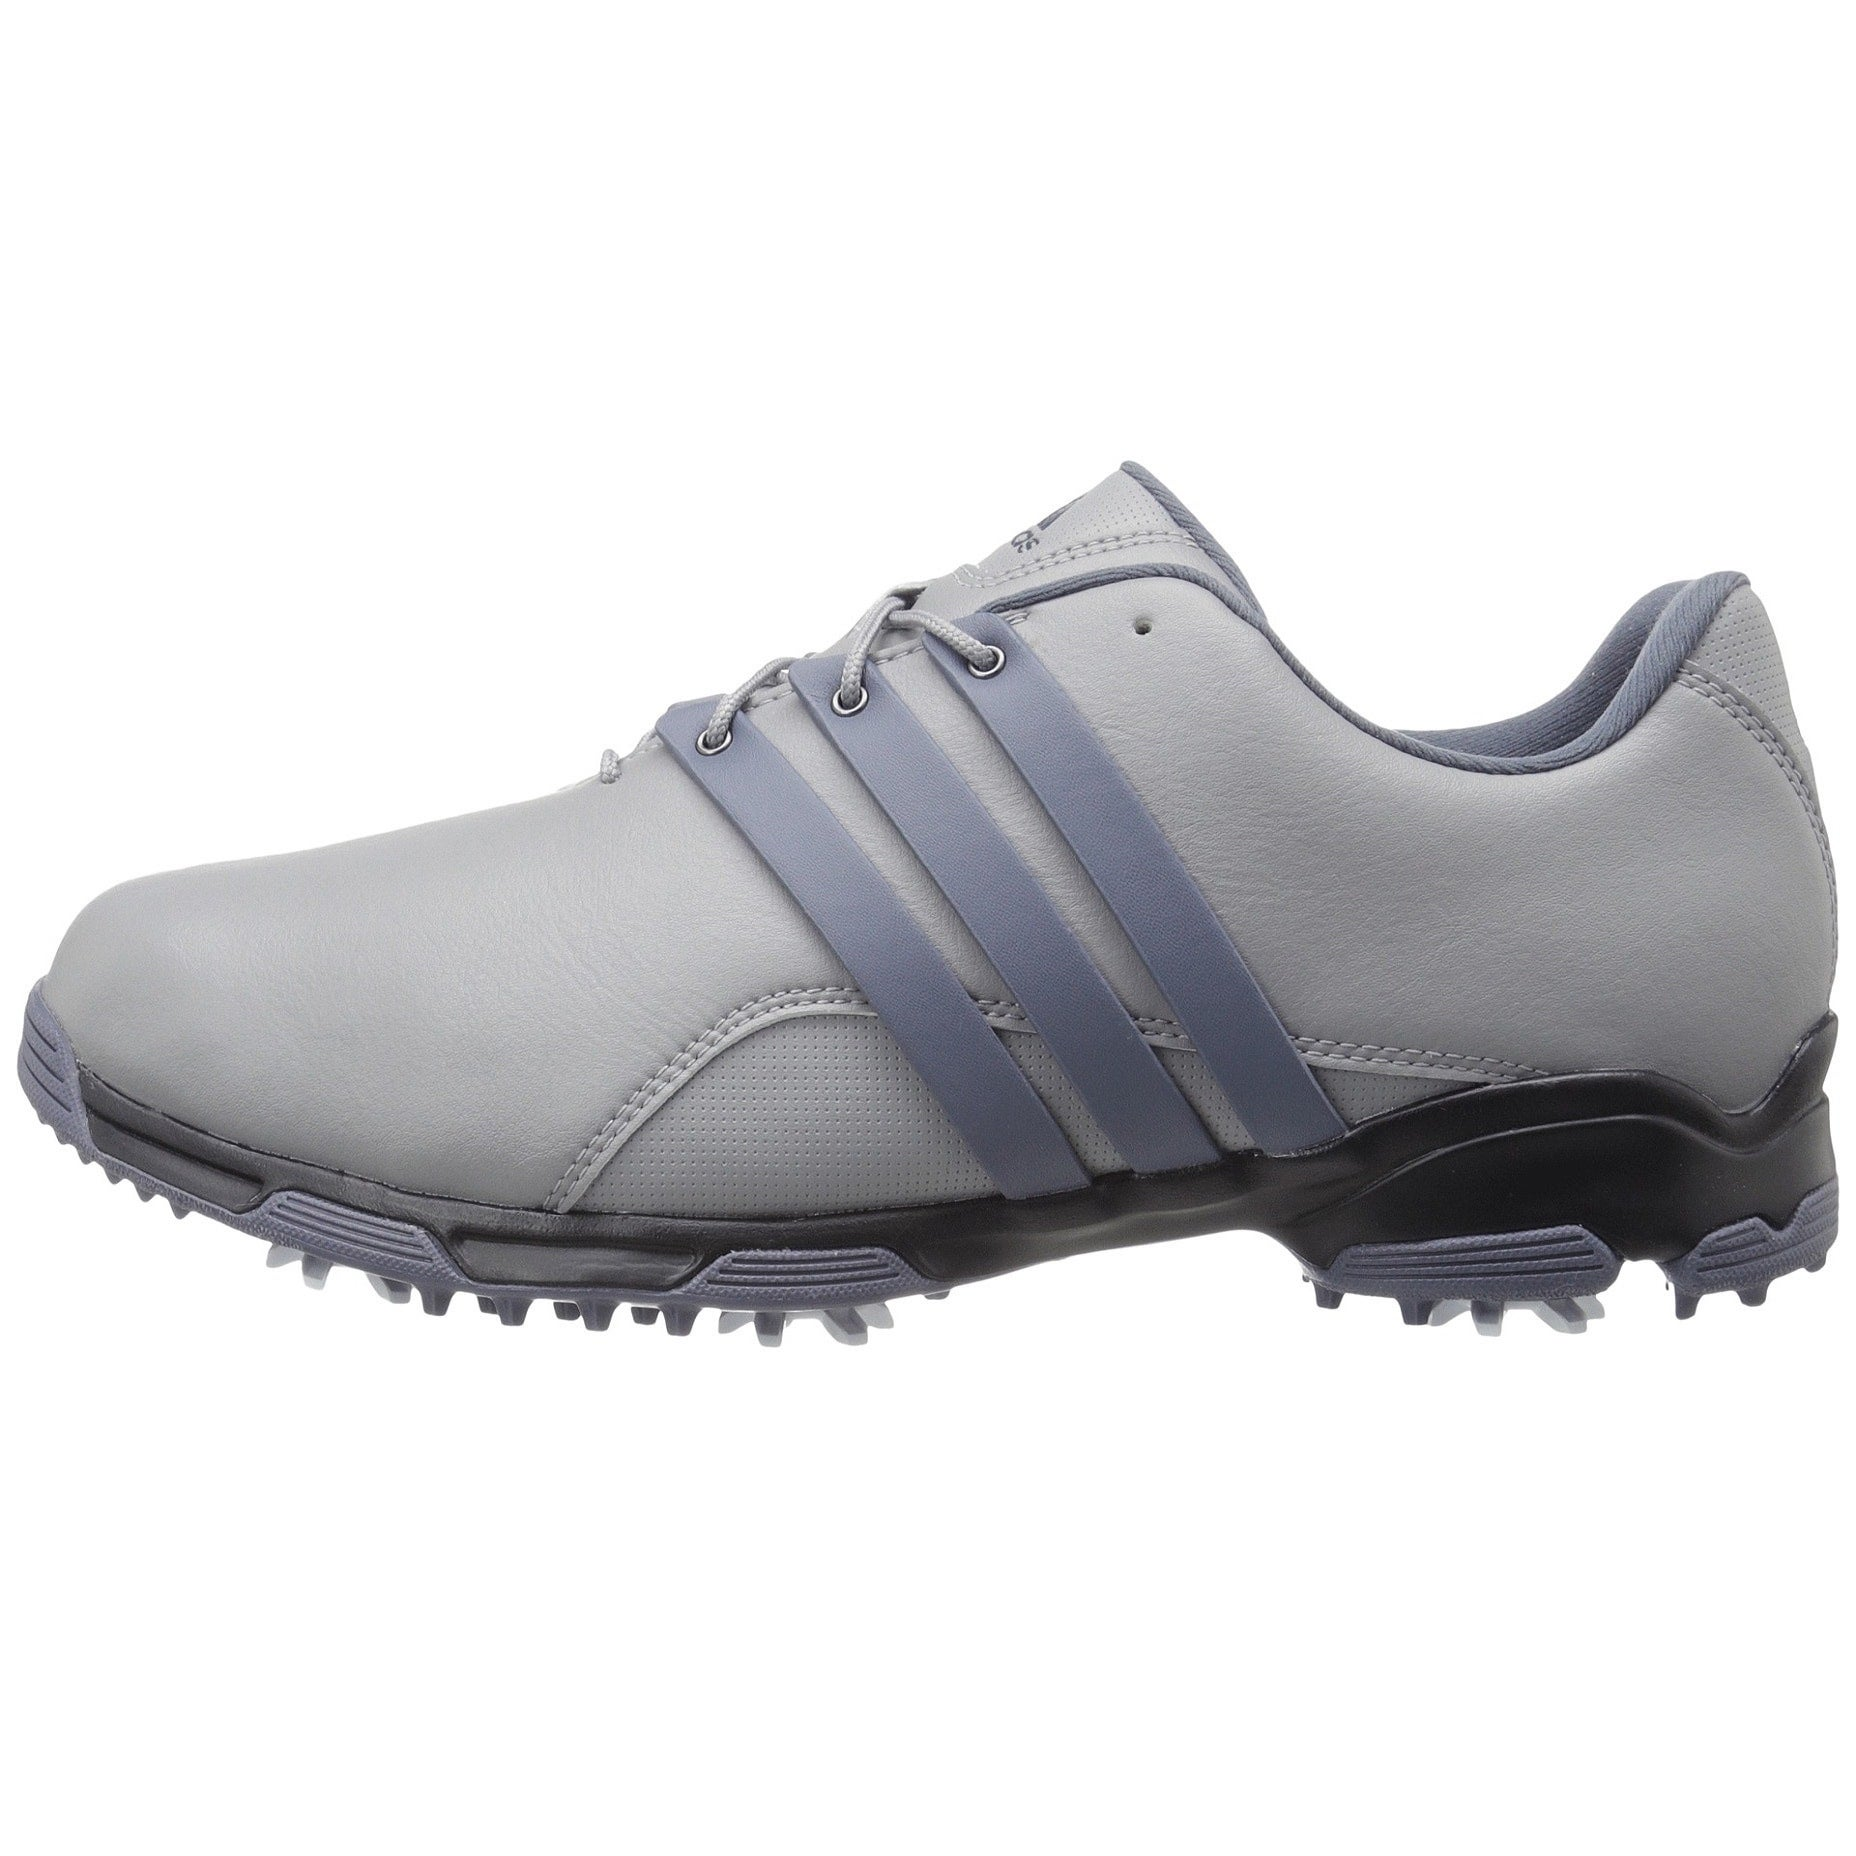 Shop Adidas Men s Pure TRX Light Onix Onix Core Black Golf Shoes F33412 -  Free Shipping Today - Overstock.com - 18507164 967d3d0df